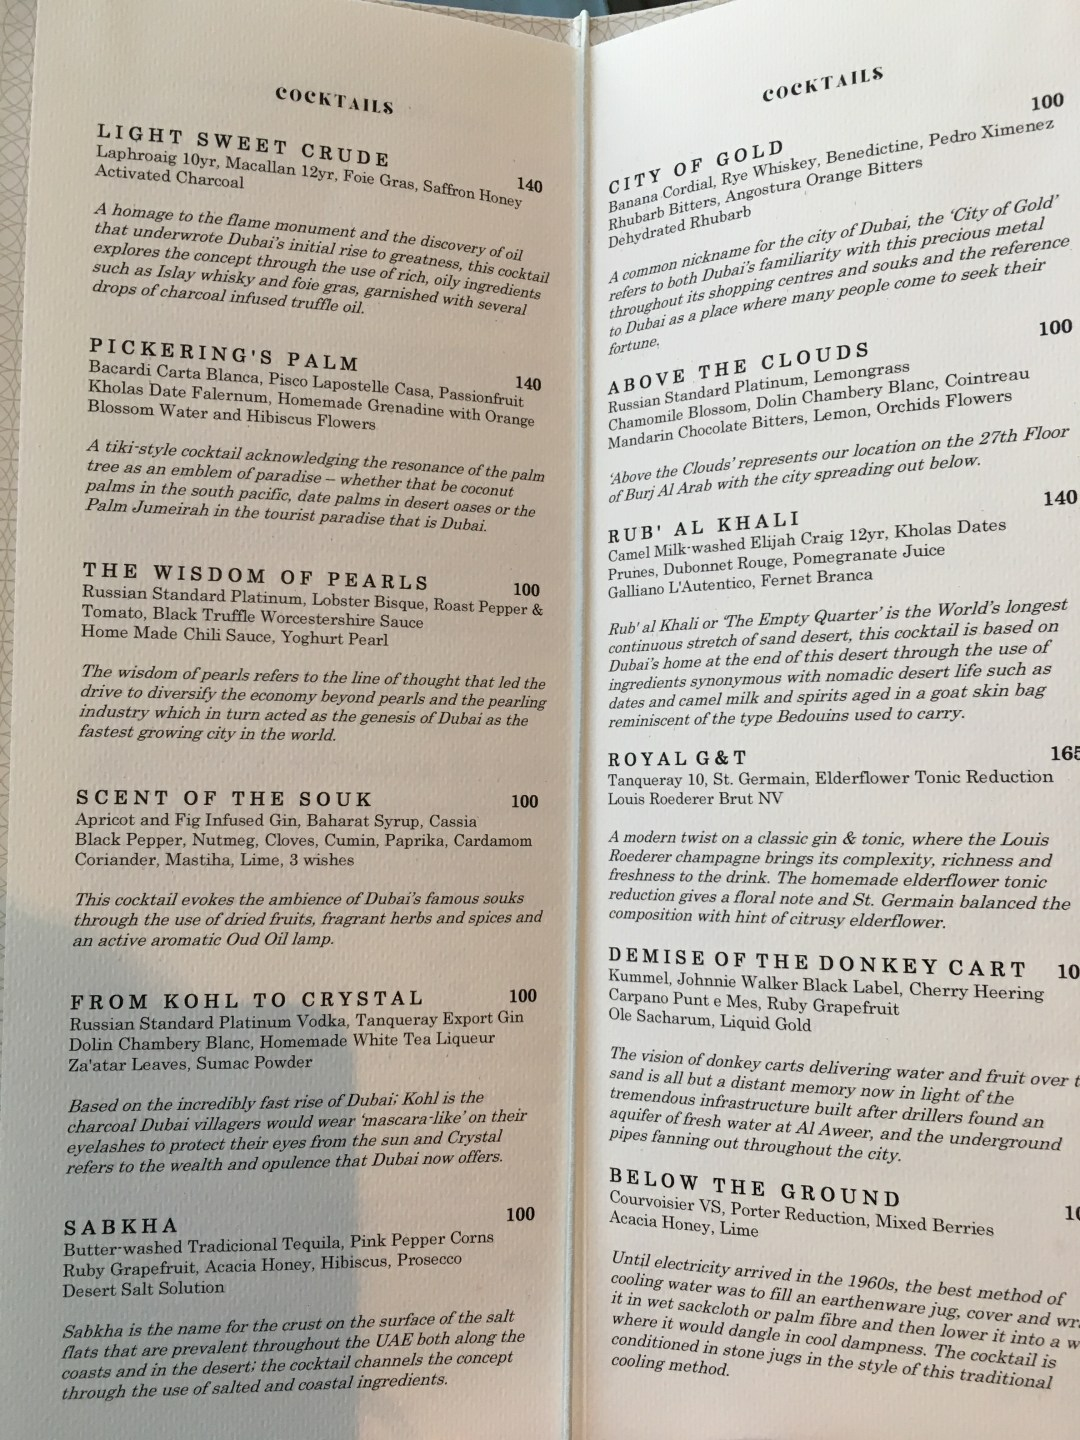 Cocktail menu for Gold on 27